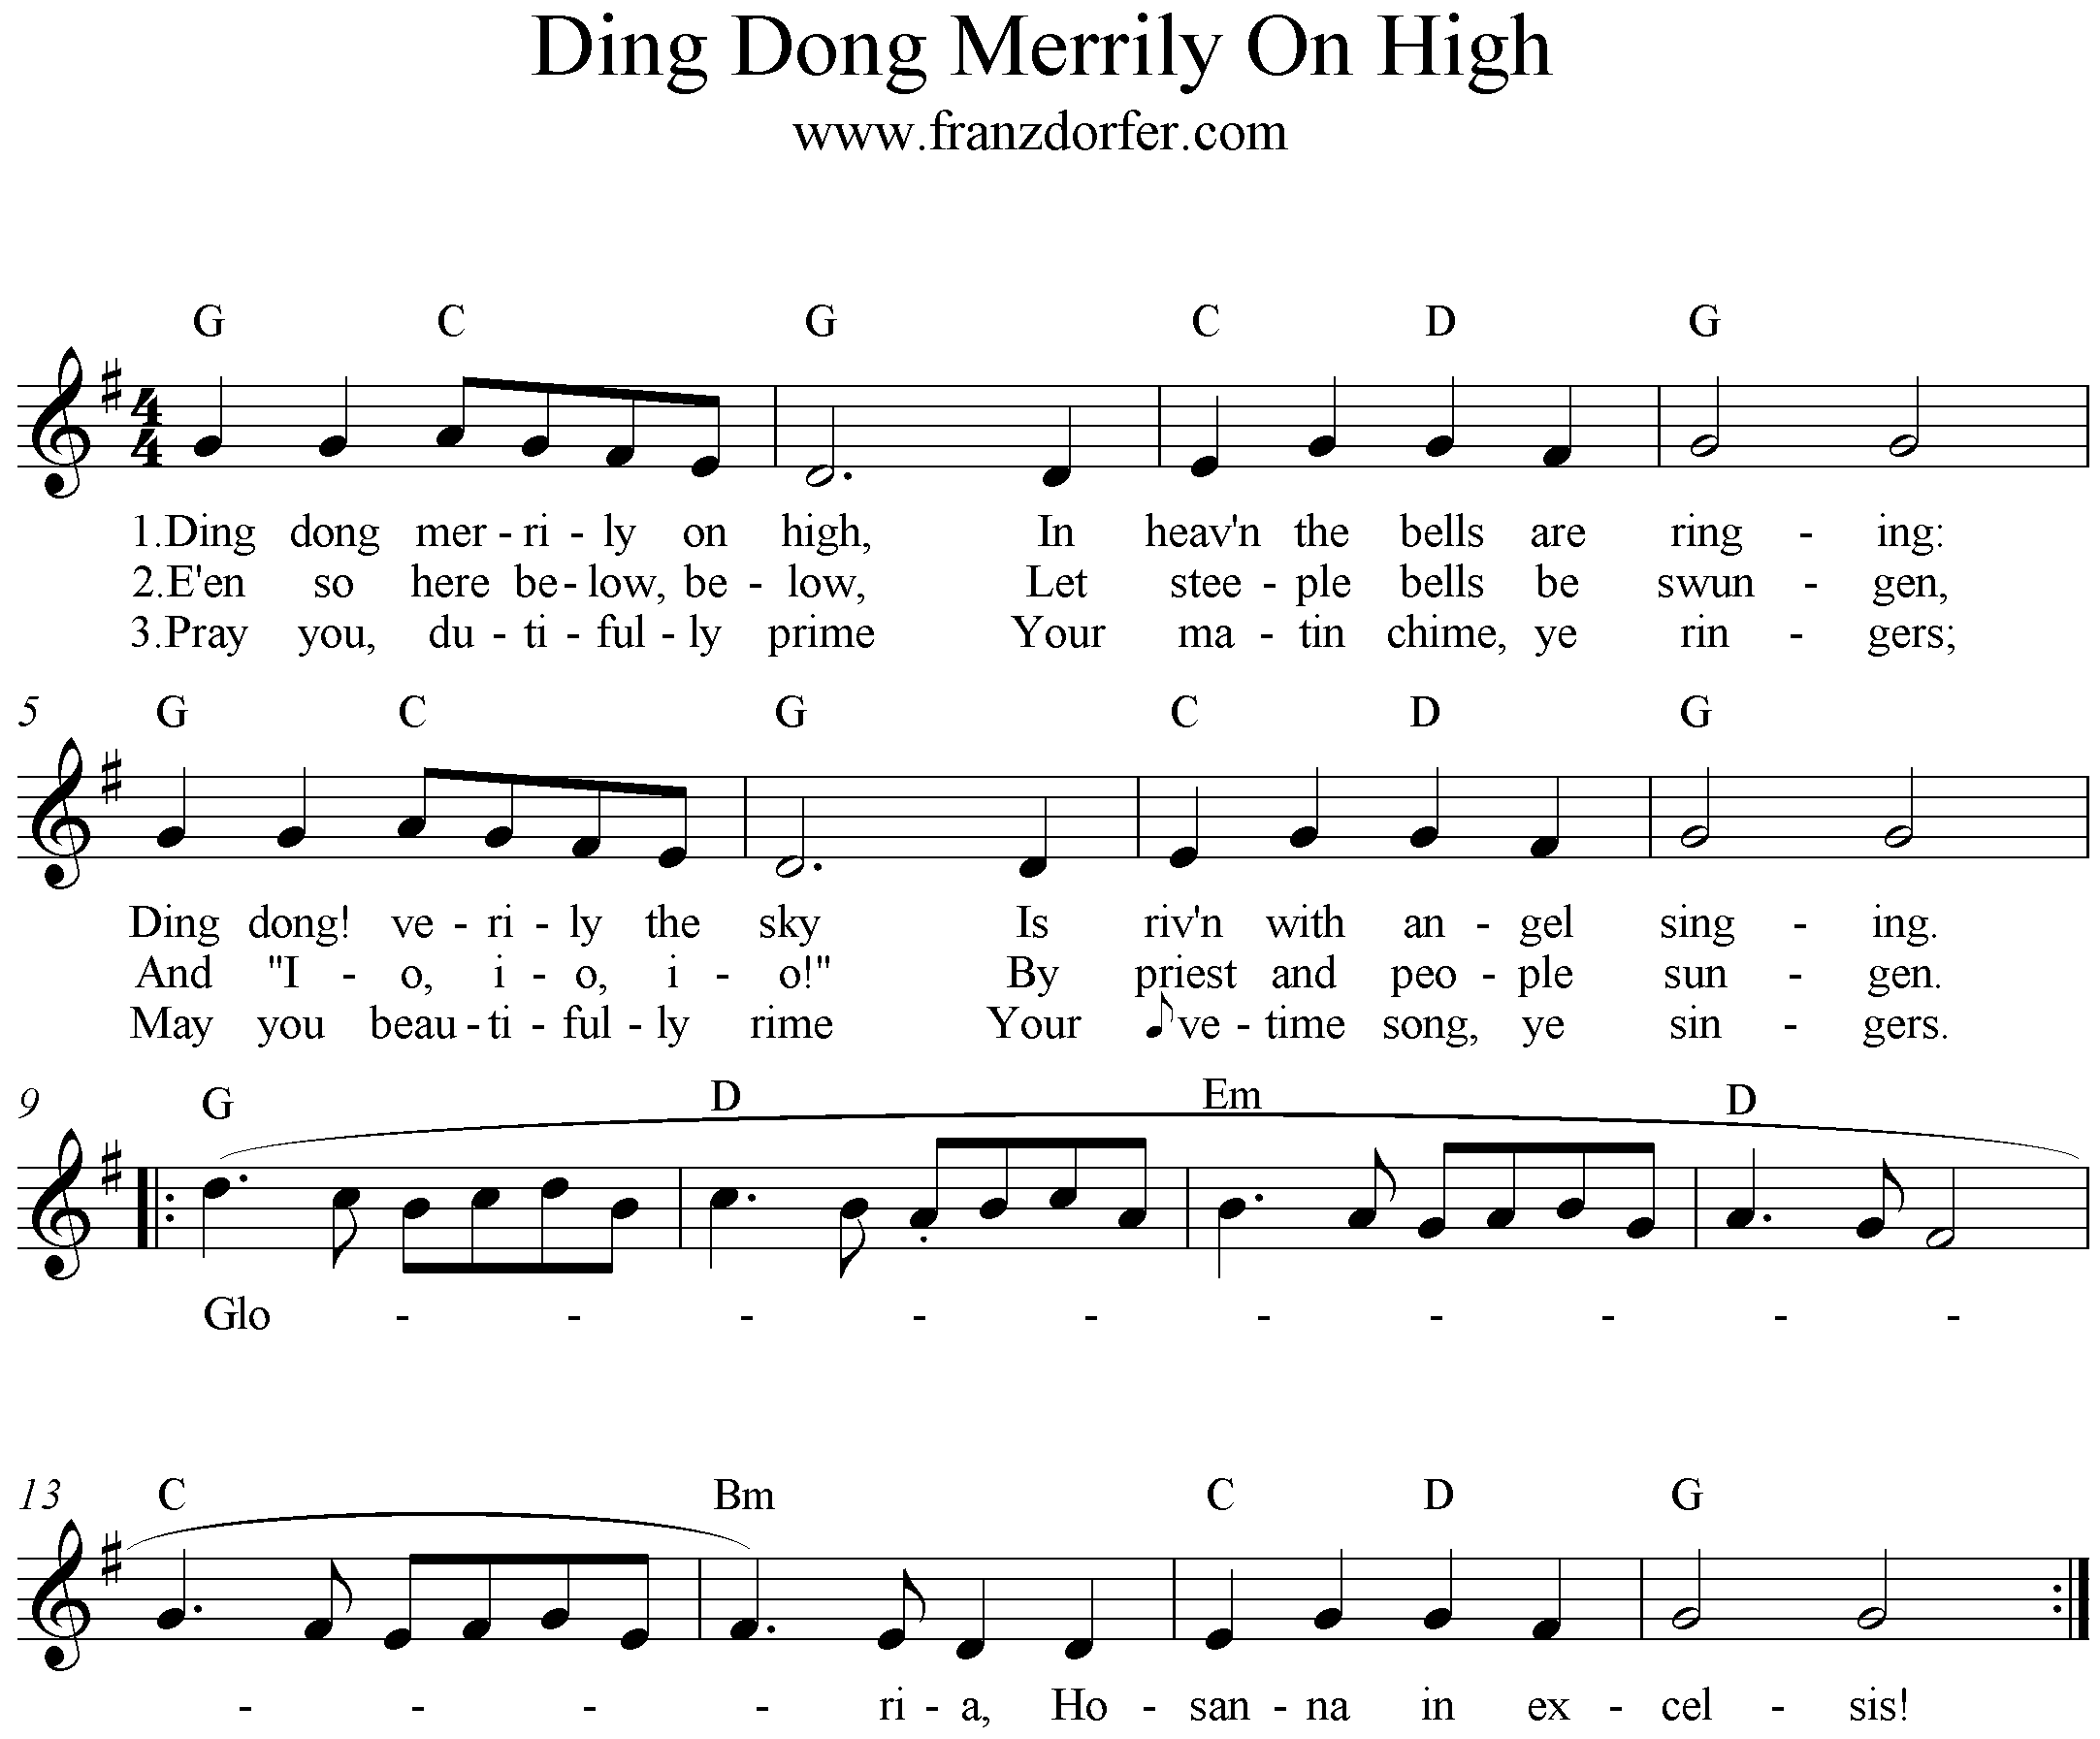 Noten Ding Don Merrily On High, G-Major